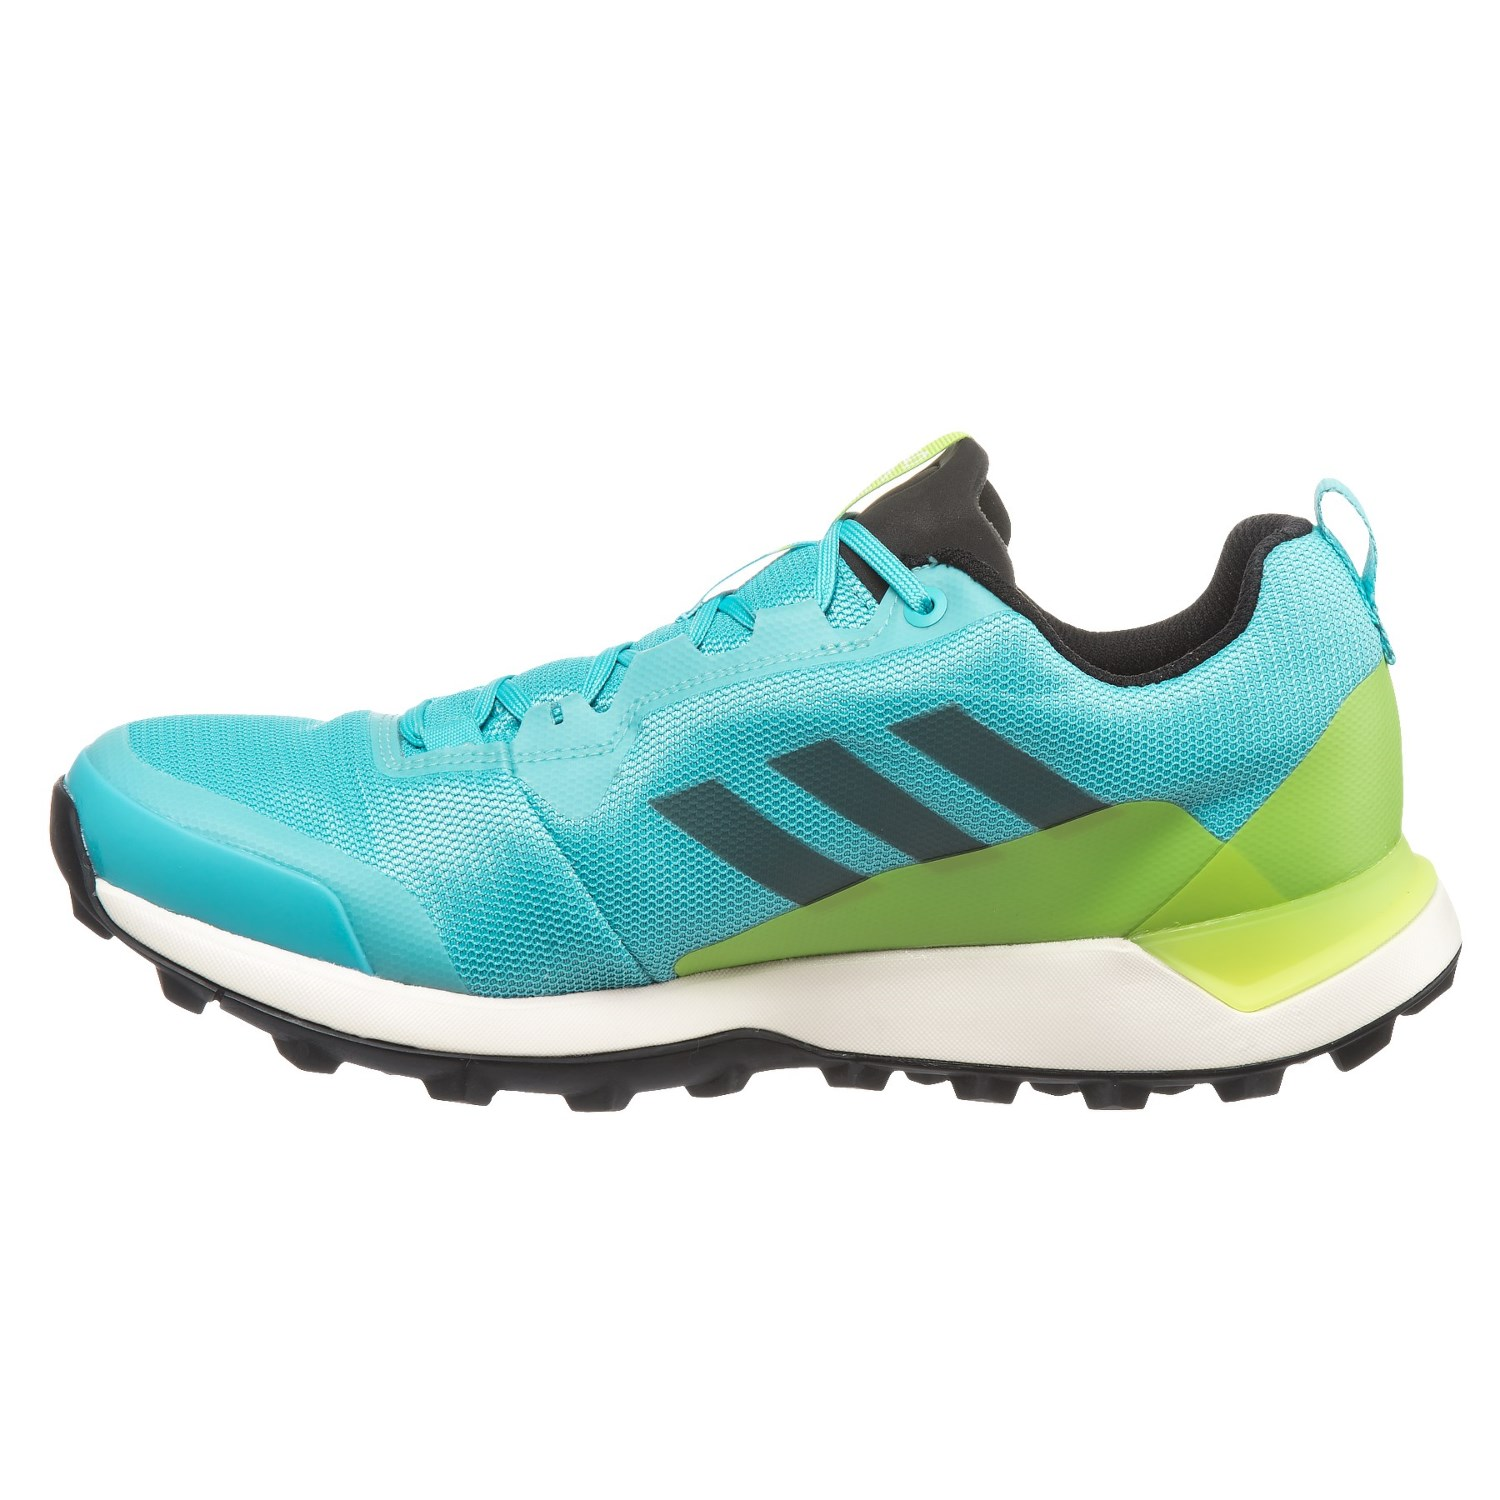 3598fa3a16d adidas Terrex CMTK Gore-Tex® Trail Running Shoes - Waterproof (For Women)